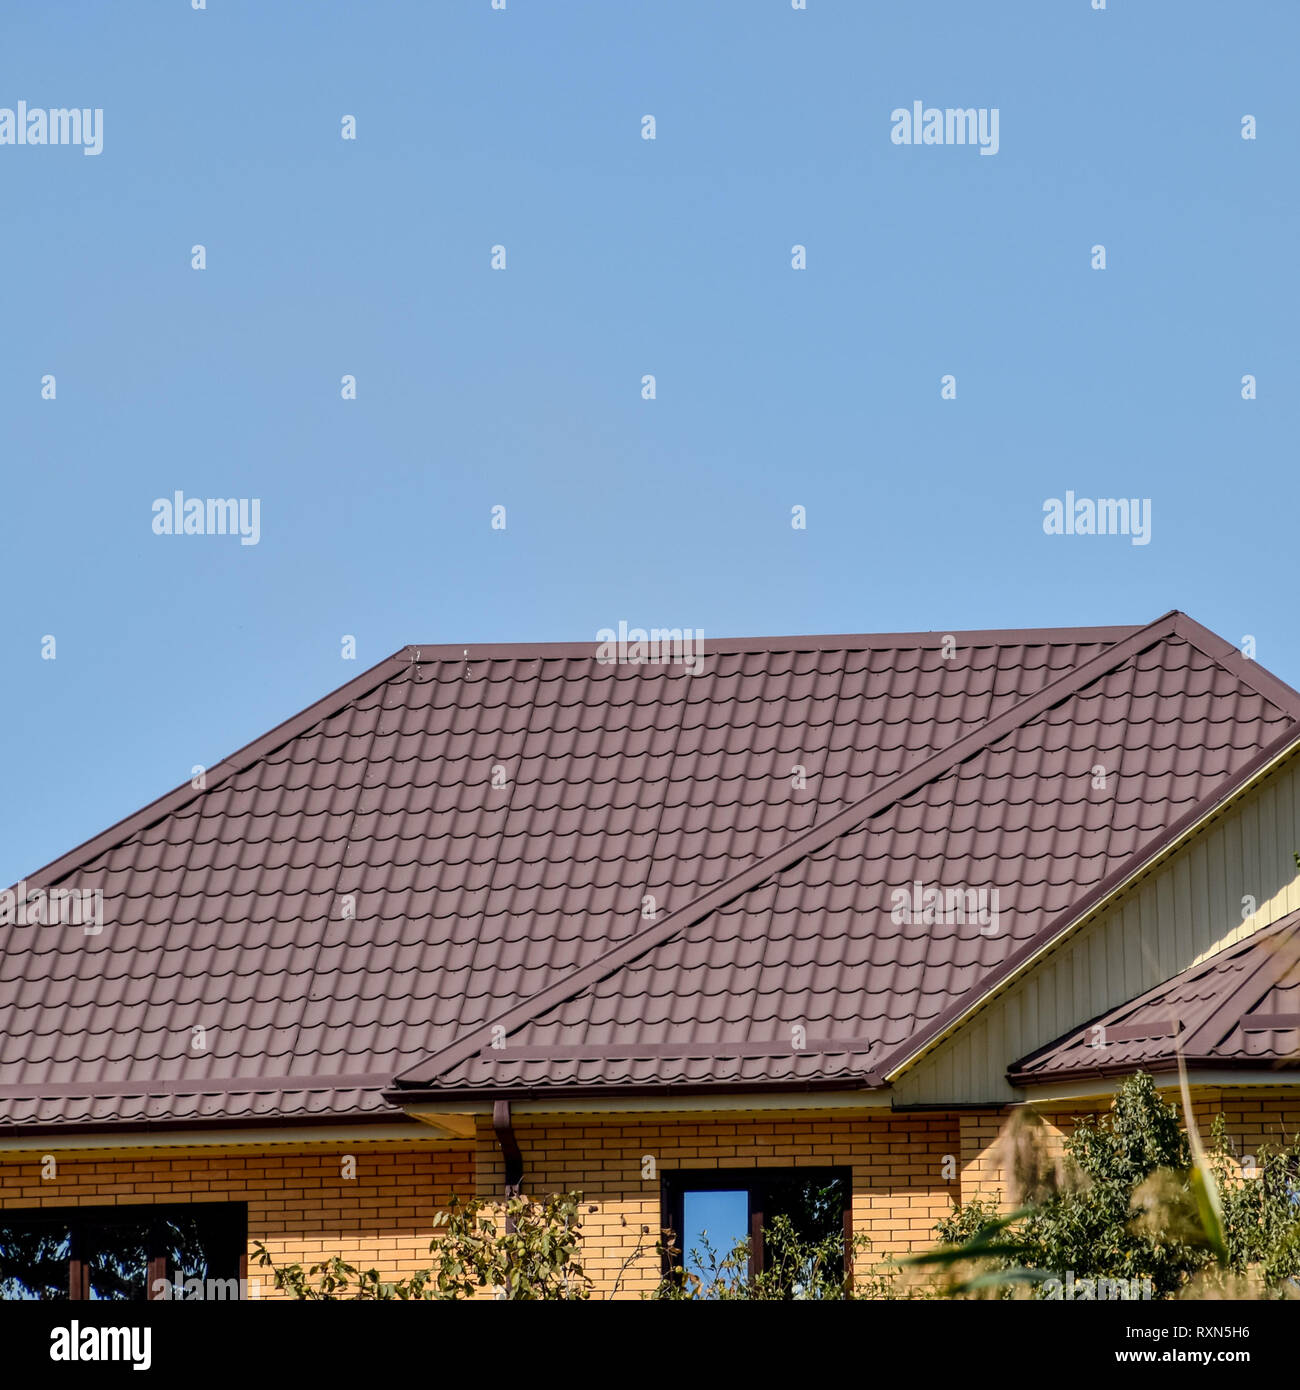 Roof Metal Sheets Modern Types Of Roofing Materials Stock Photo Alamy